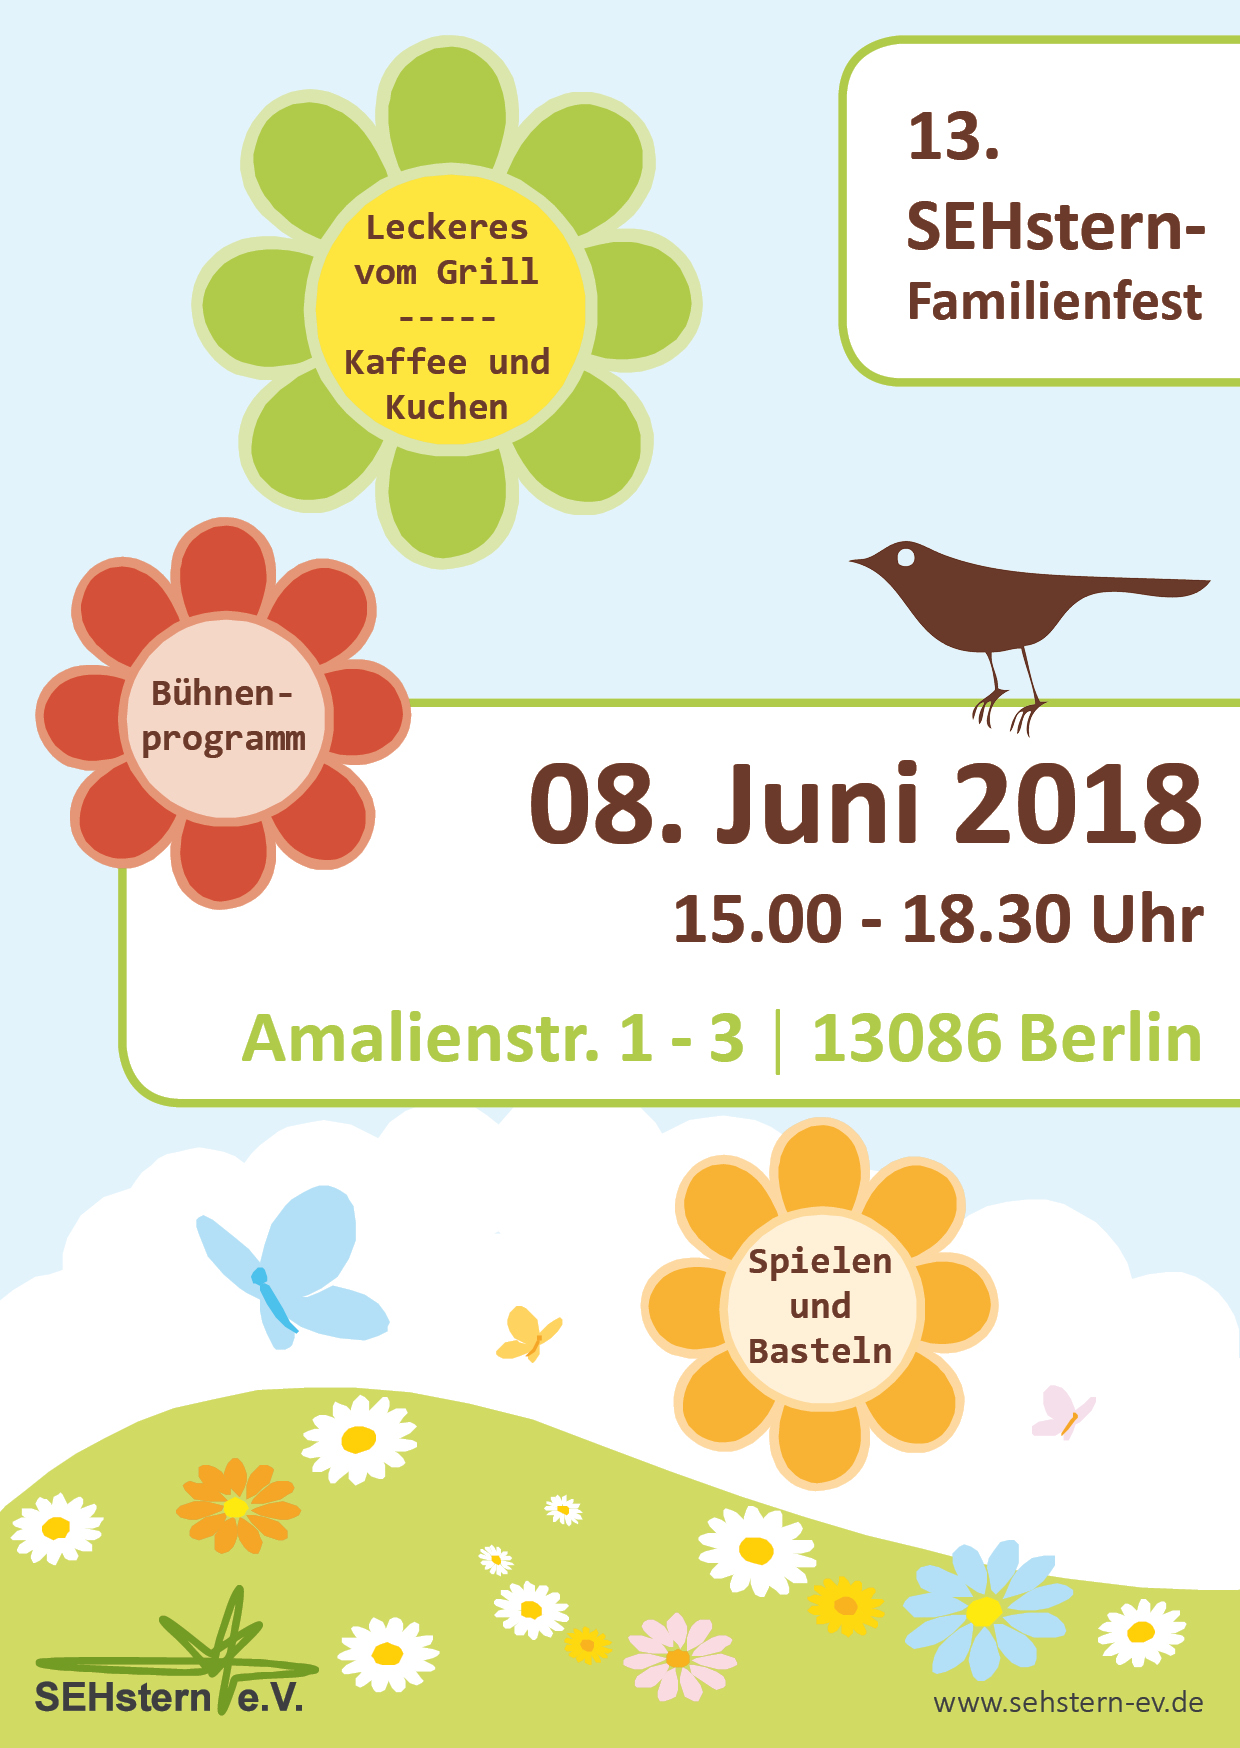 SEHsternFest 2018